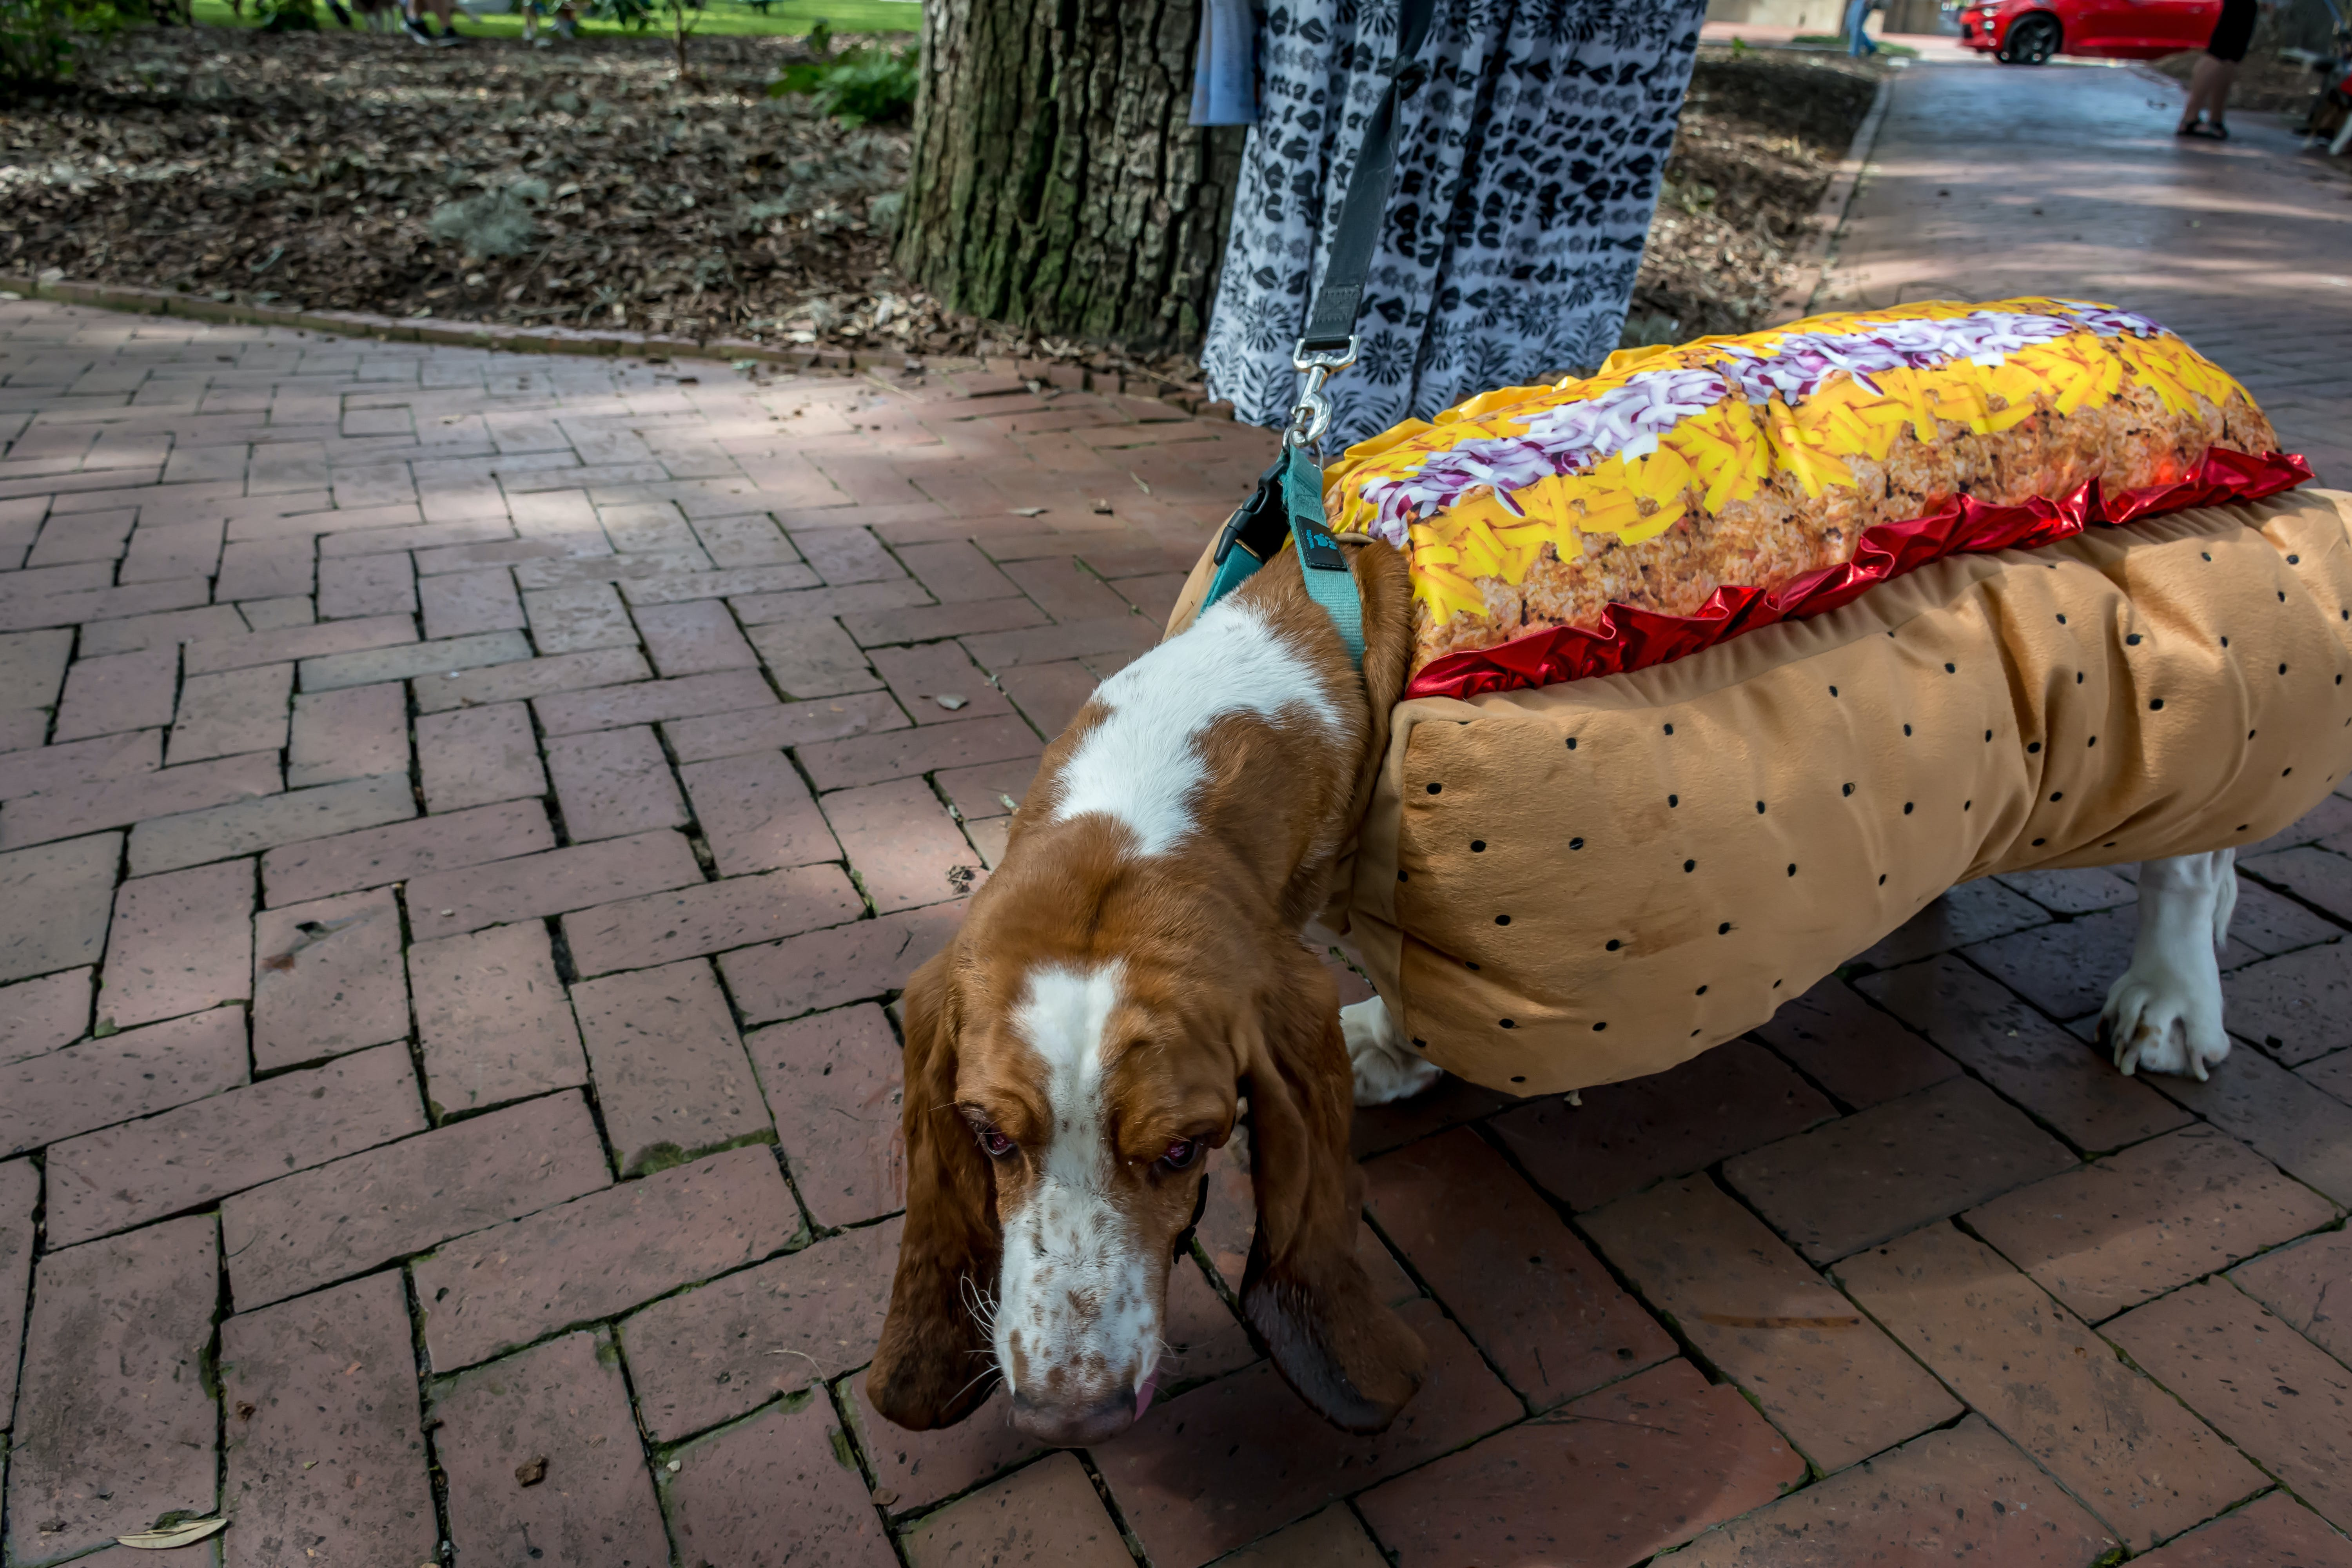 Jerry's costume story for 10 Dog Halloween Costume Ideas for Basset Hounds